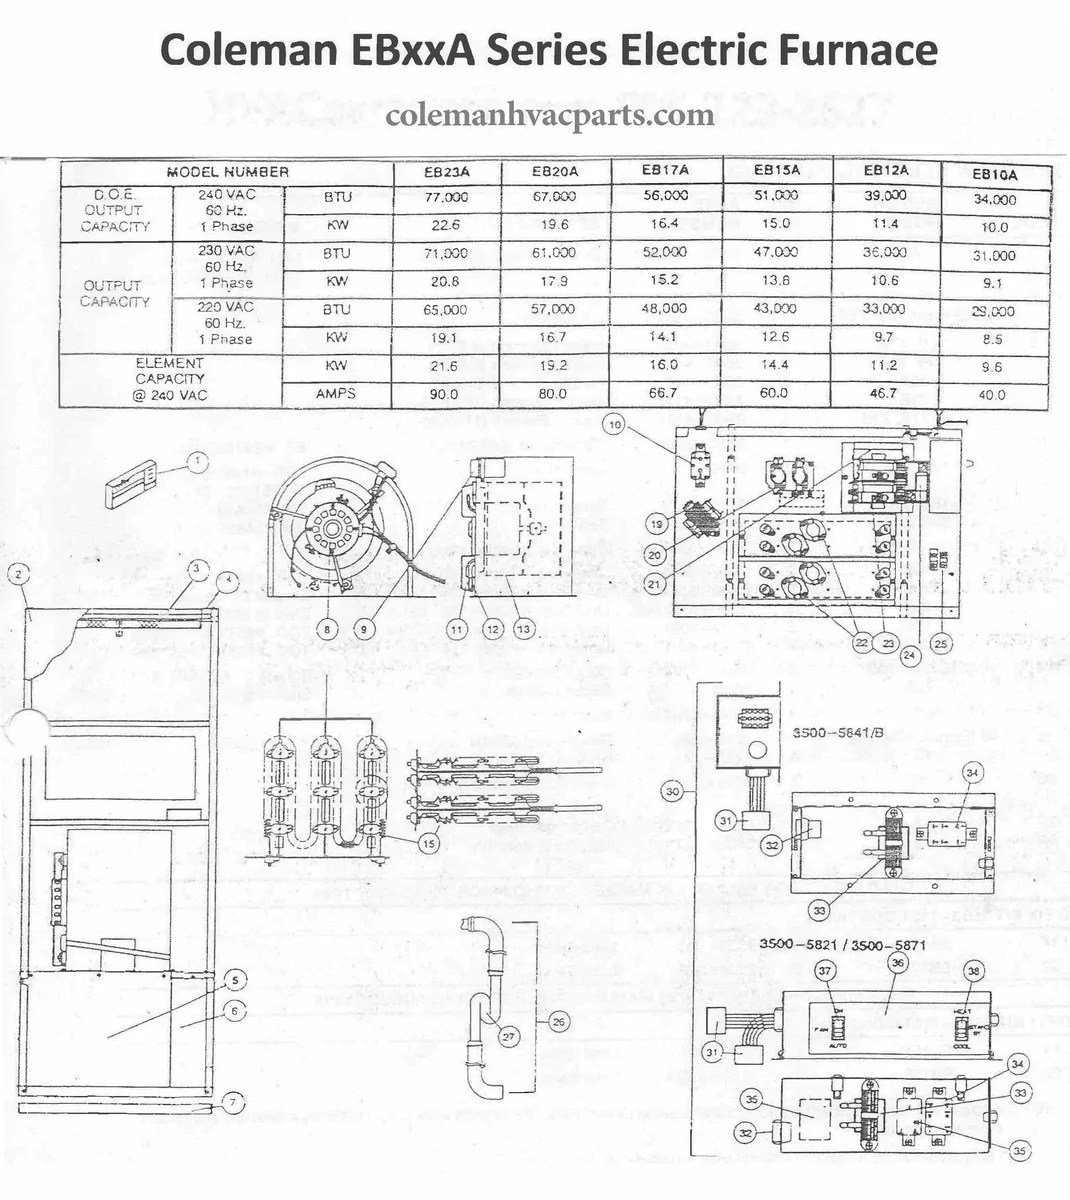 evcon eb15a electric wire diagrams simple wiring diagram schema coleman evcon electric furnace parts coleman evcon wiring diagram dgaa077bdtb [ 1070 x 1200 Pixel ]